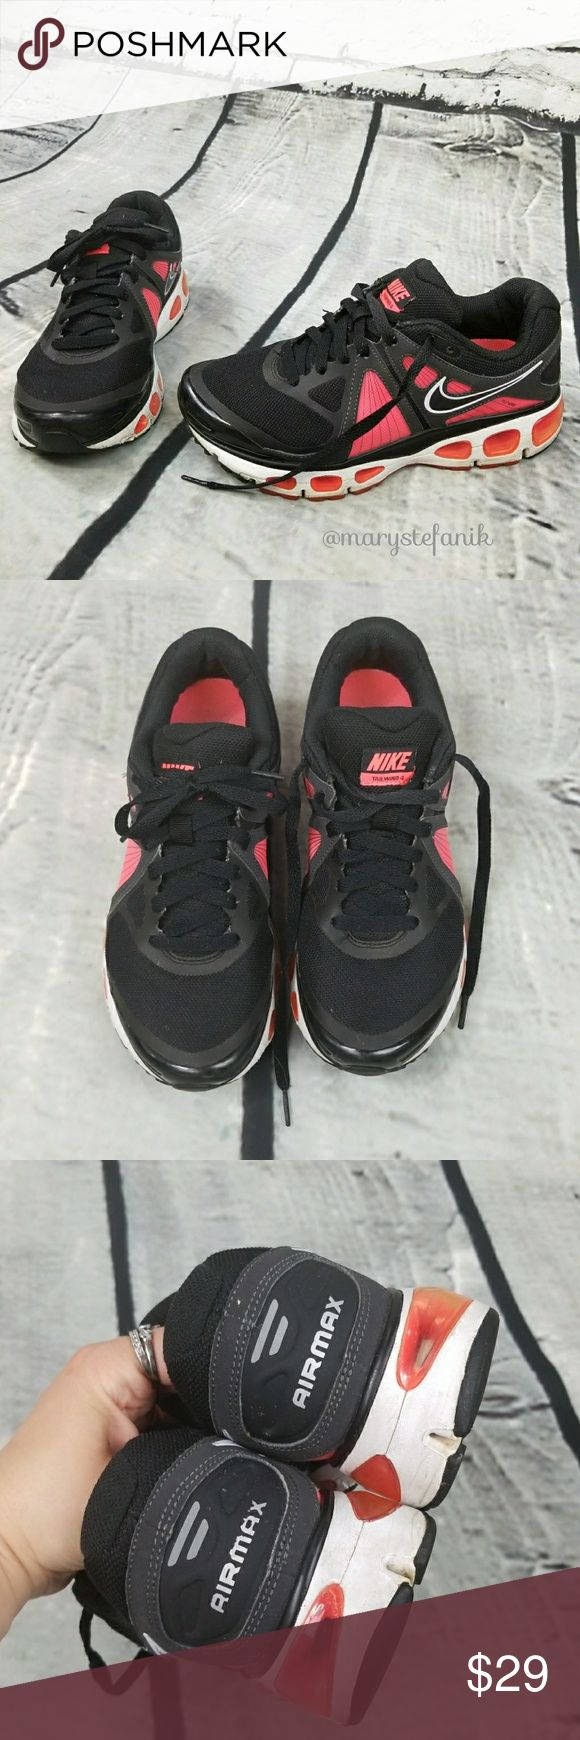 Nike Air Max Tailwind 4 Shoes 453975-060 size 8 Nike Air Max Tailwind 4 Shoes 453975-060 size 8 in great used condition from 2011. Minor scuffing from use. Black, pinkish red (salmon), and pink interior. Great sneakers for your workout!  Please let me know if you have any questions. Happy Poshing! nike Shoes Sneakers